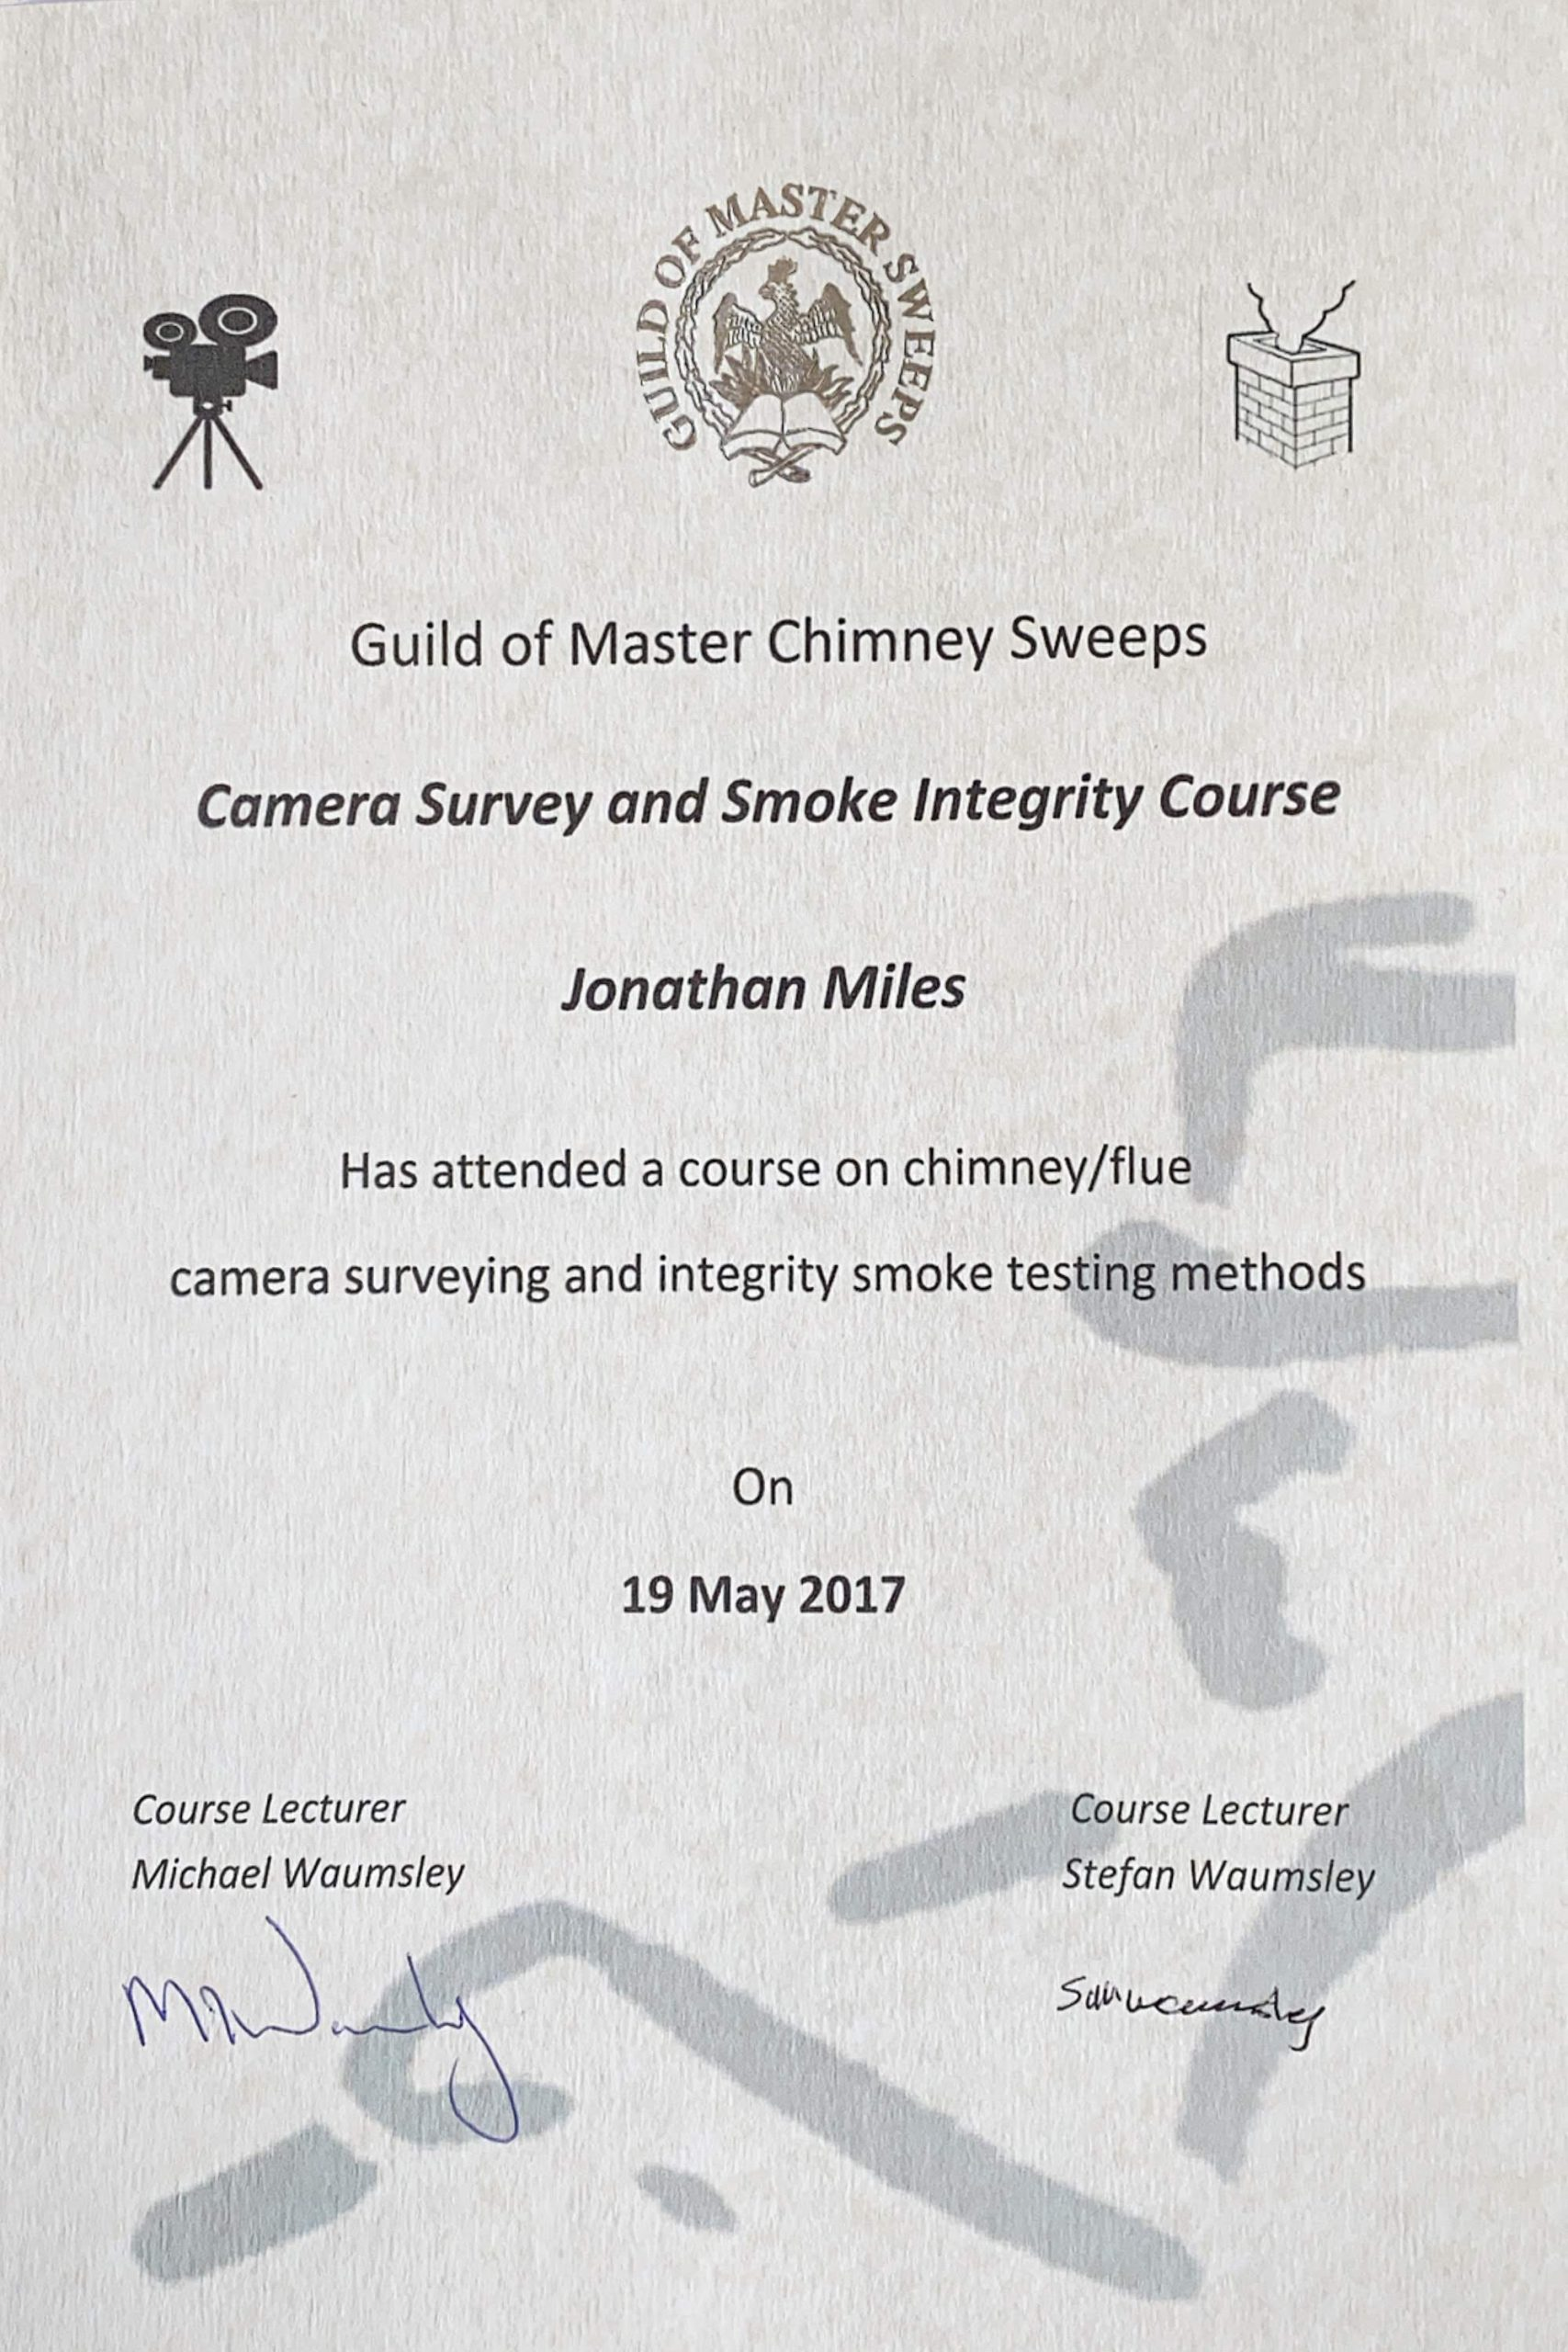 Exeter Chimney Sweep Camera Survey and Smoke Integrity Course